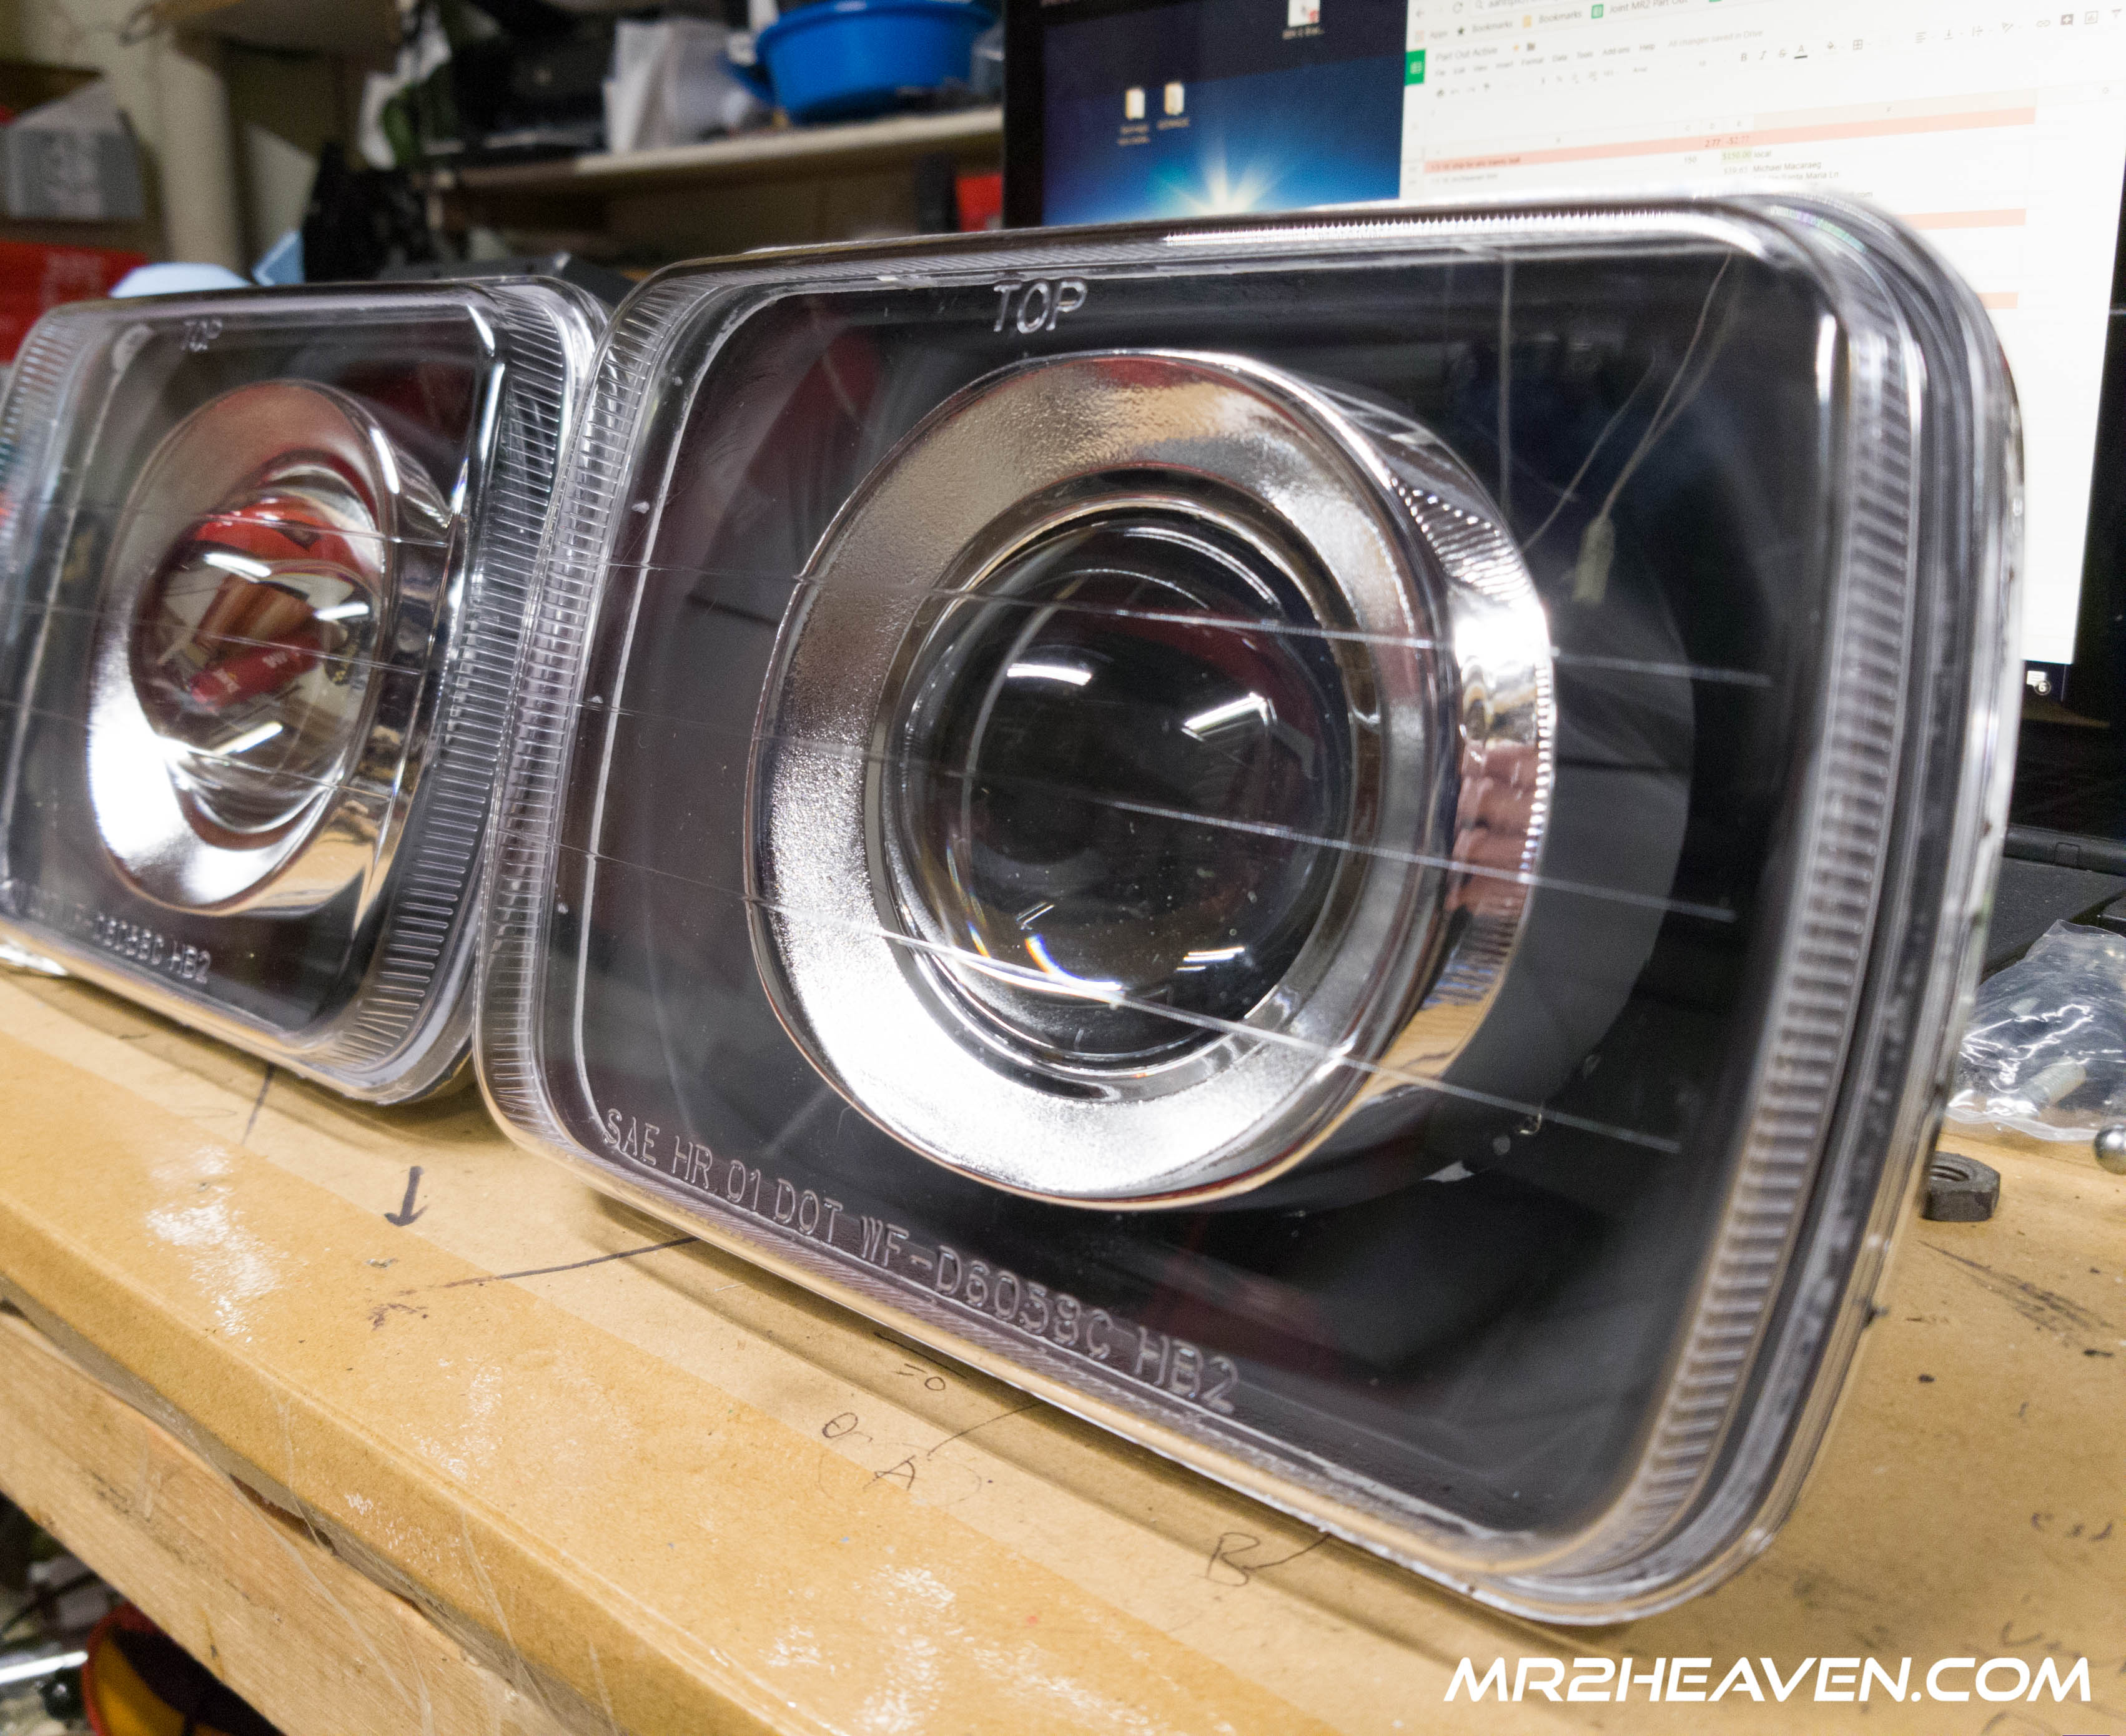 MR2Heaven Projector Headlamp, Wiring harness, Ballast and Bulb Installation Guide